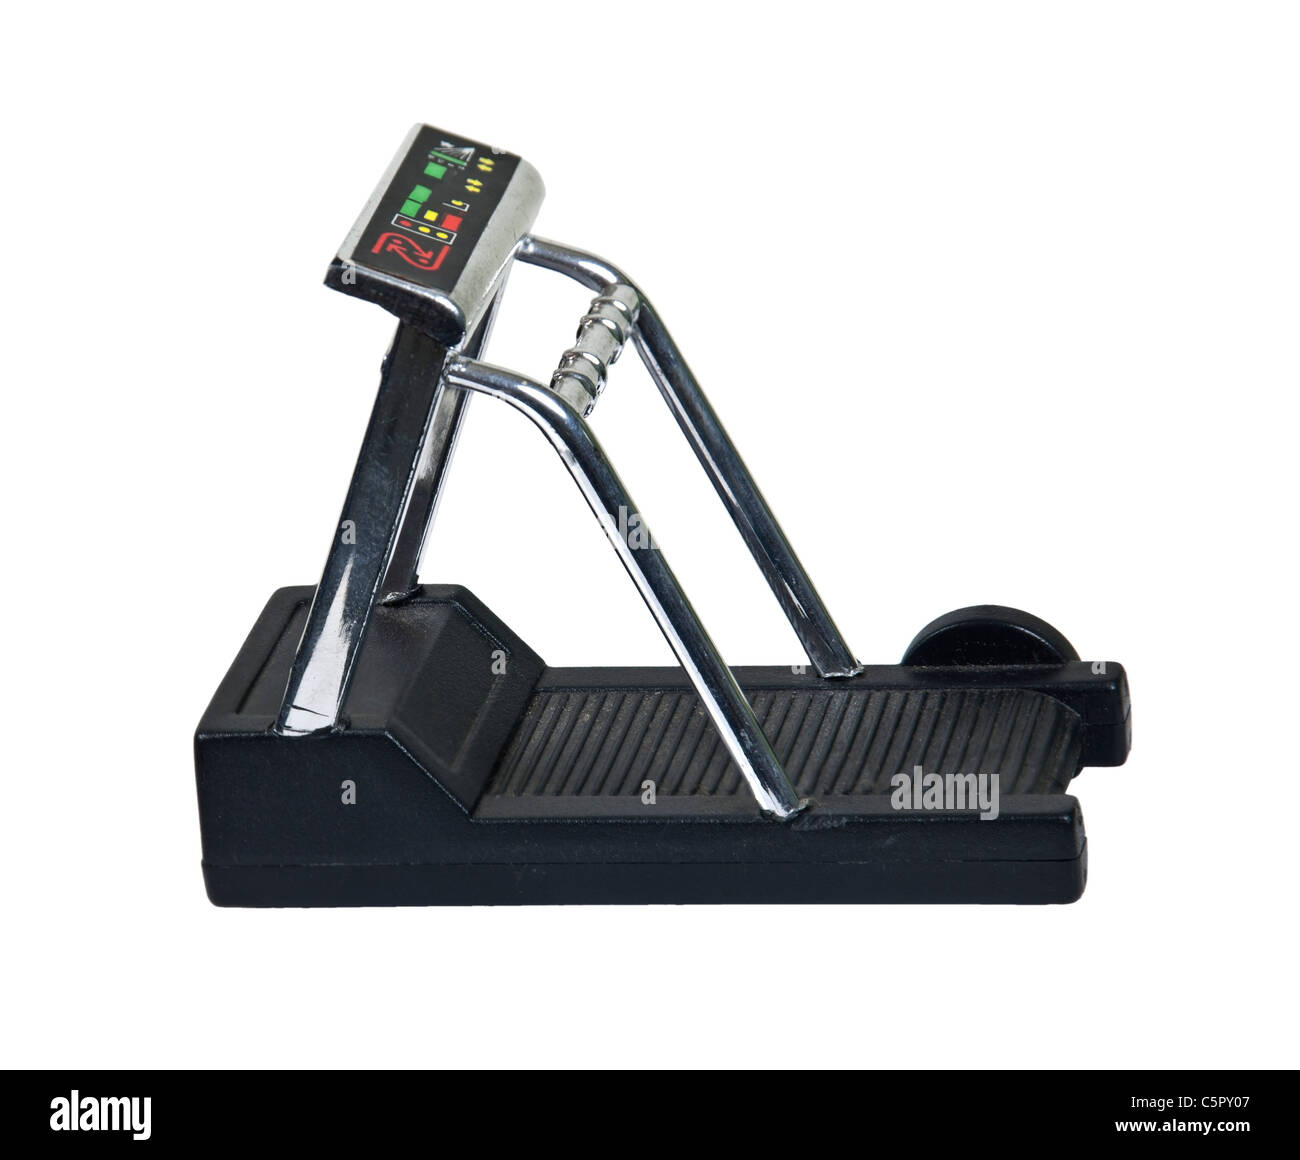 Exercise treadmill used for convenient indoor walking for health fitness - path included - Stock Image